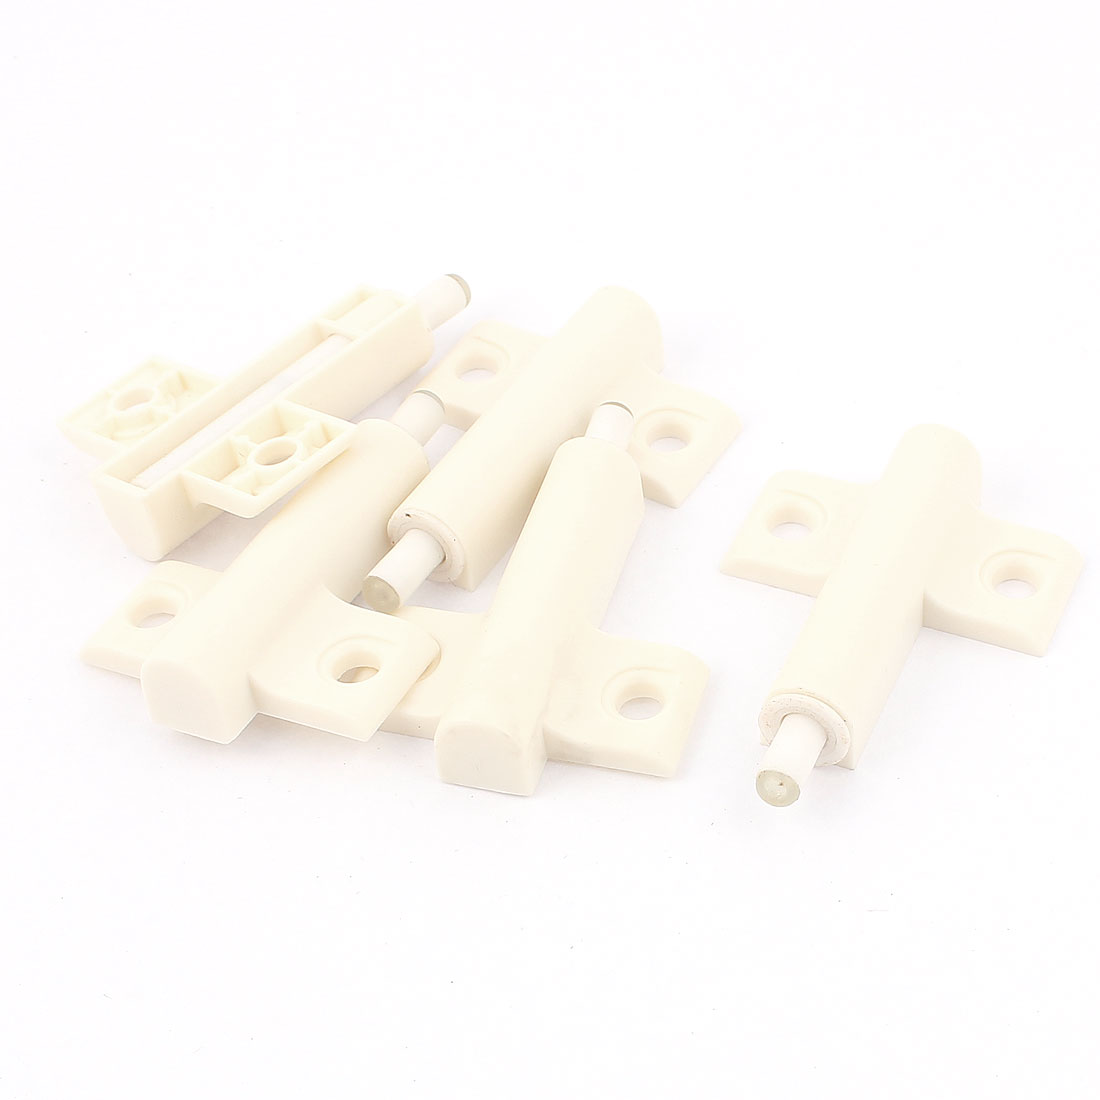 Cabinet Door Drawer Quiet Soft Close Damper Buffers White 5pcs